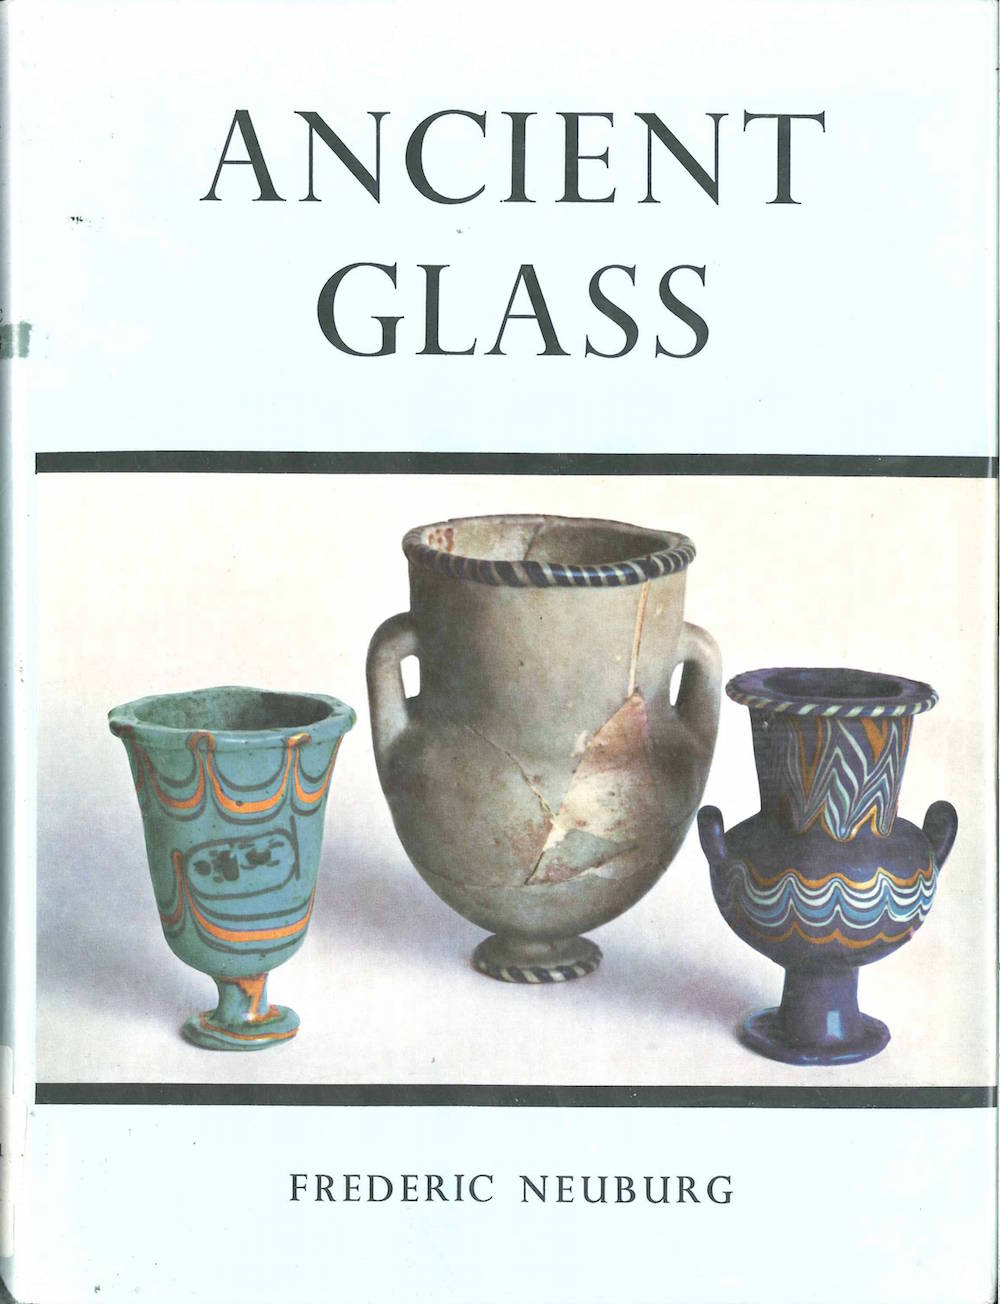 AncientGlassCover